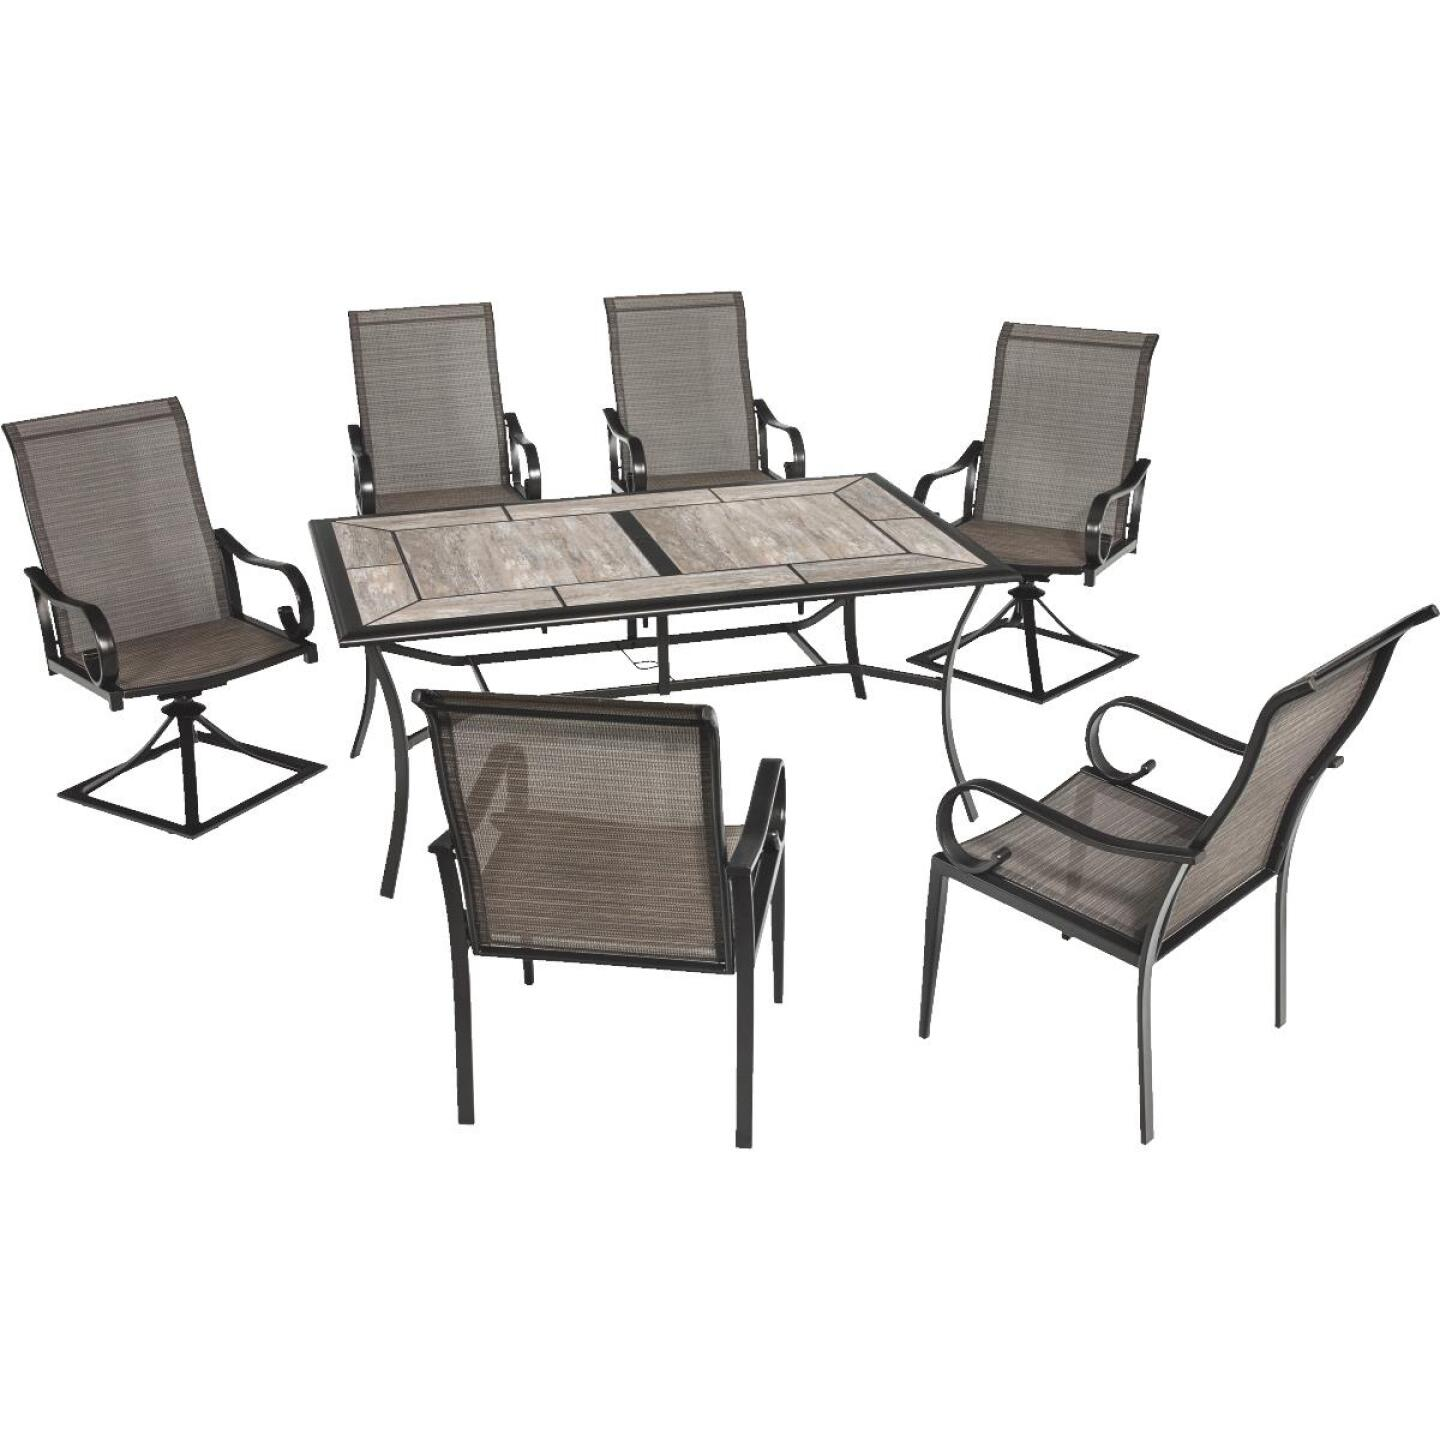 Outdoor Expressions Berkshire 7-Piece Dining Set Image 202